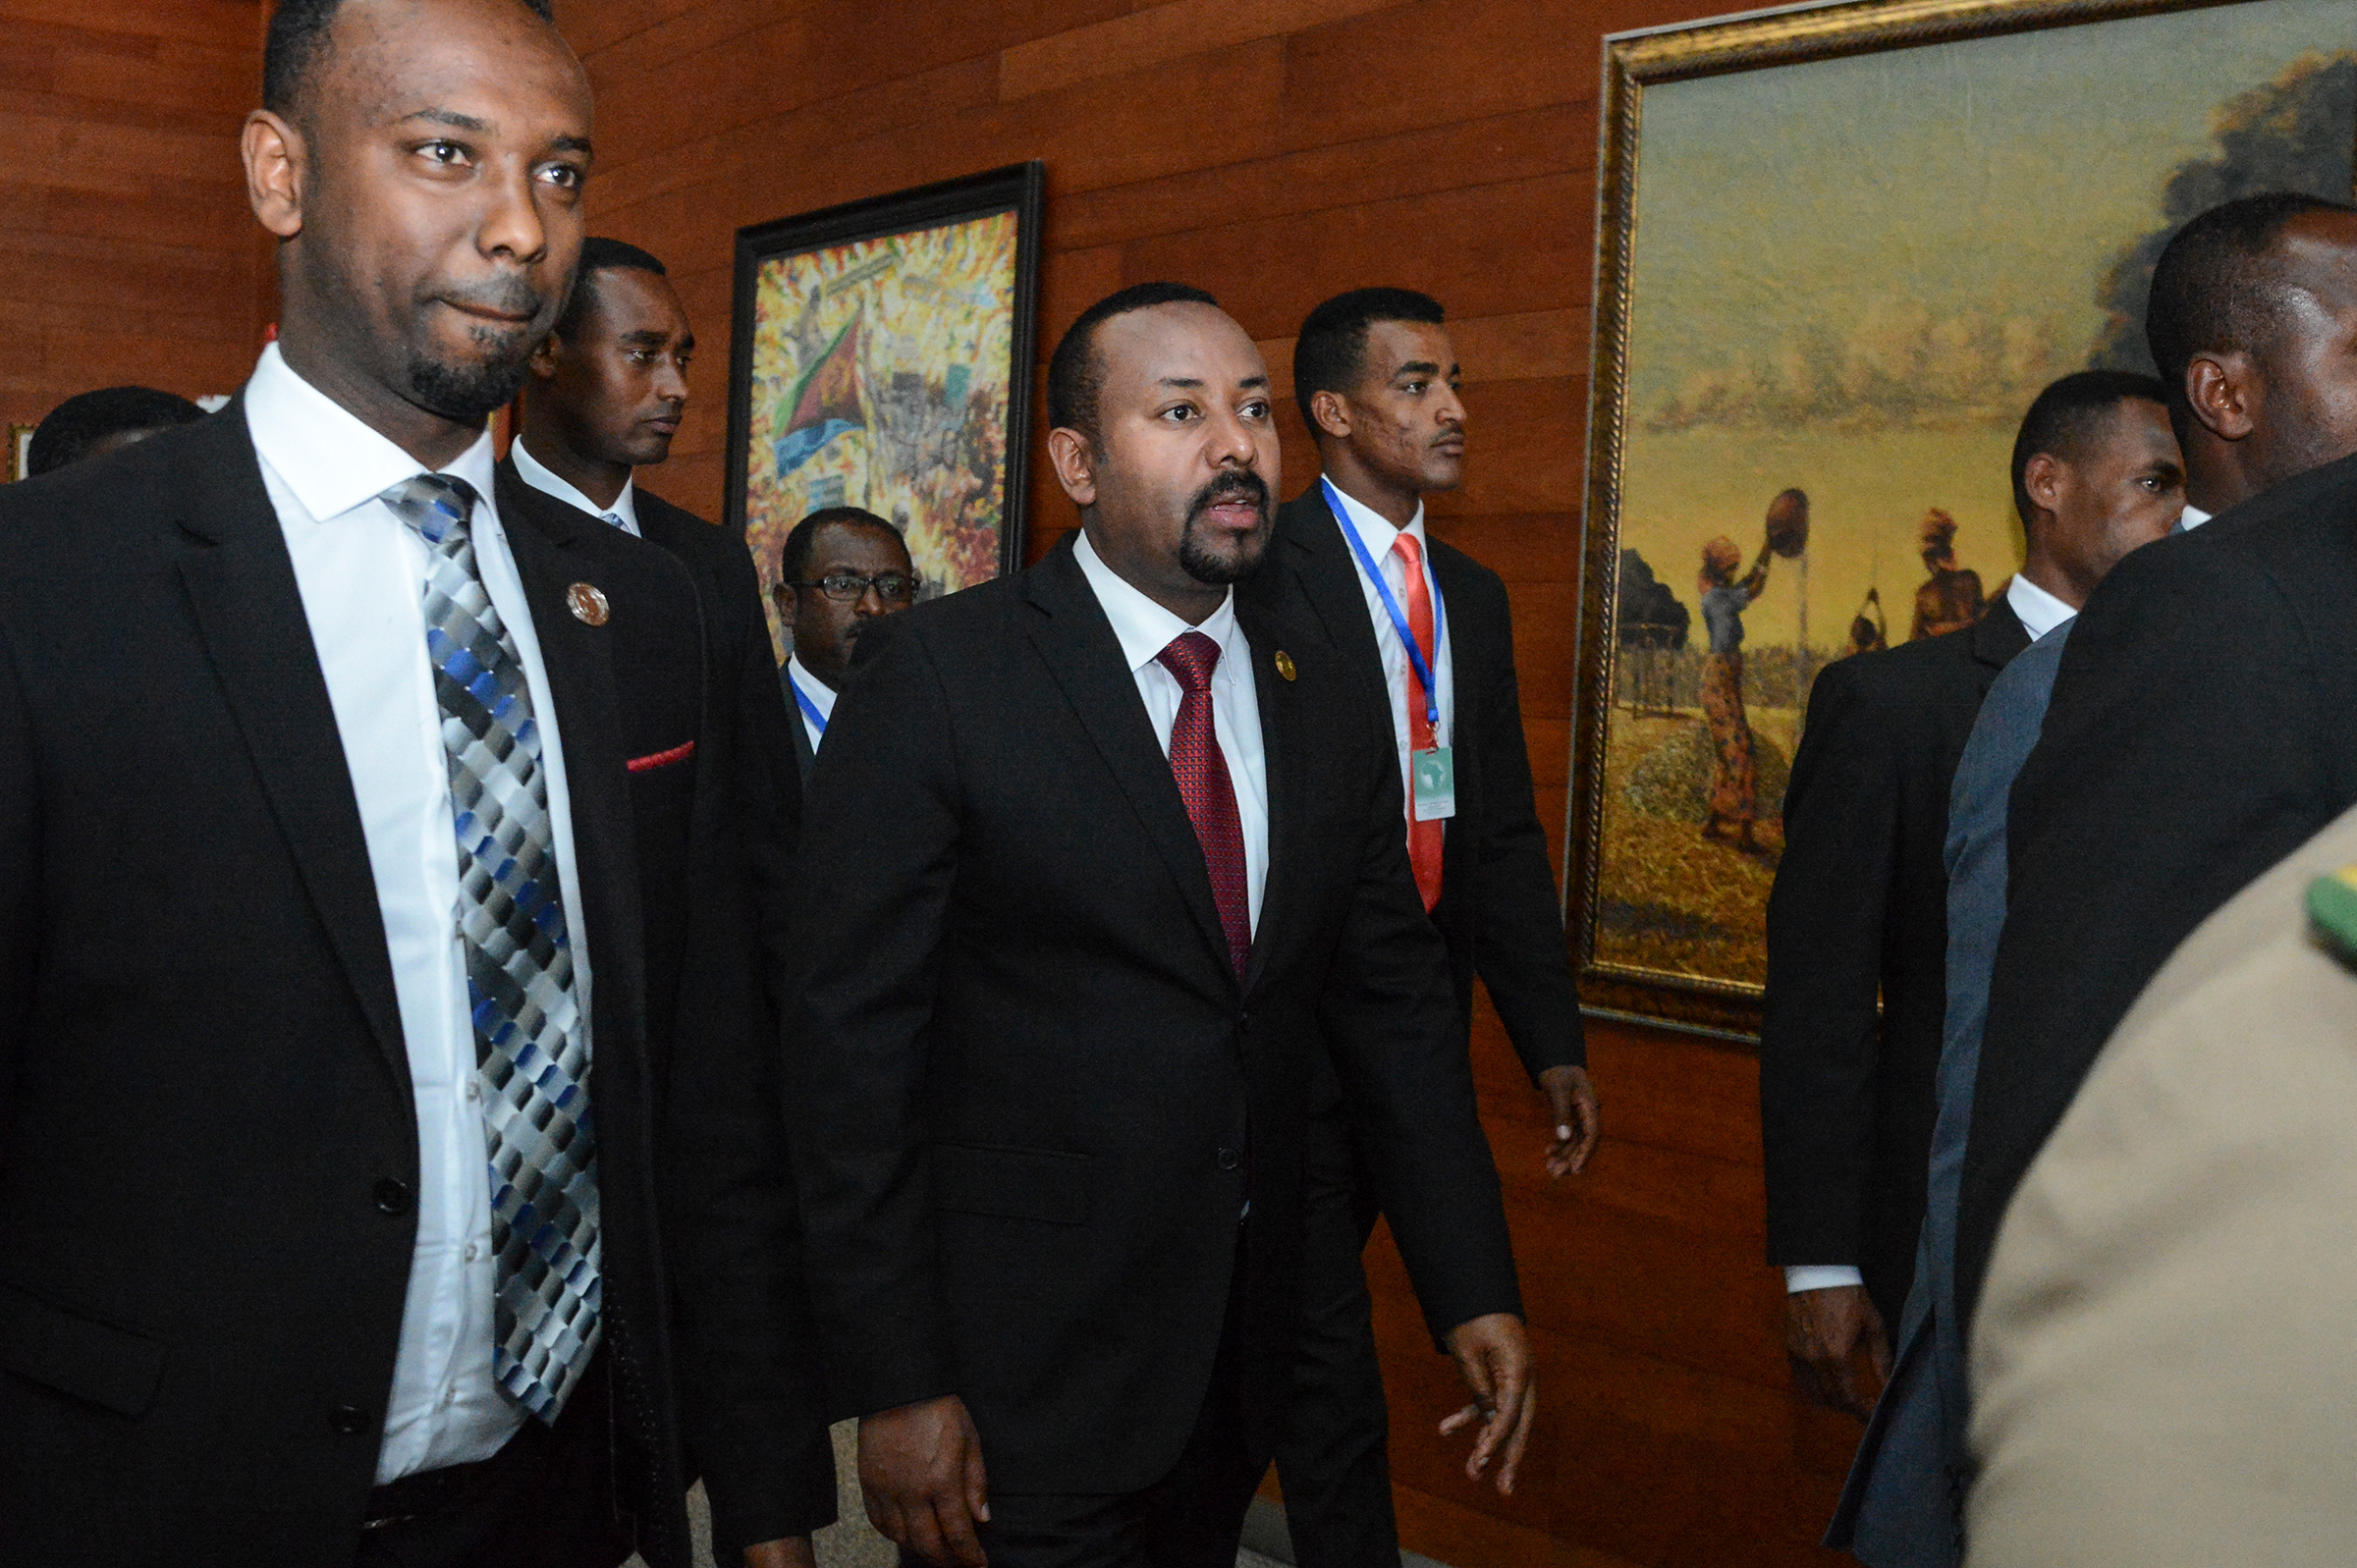 Ethiopia's Prime Minister Abiy Ahmed, center, arrives for the opening session of the 33rd African Union Summit in Addis Ababa on Feb. 9